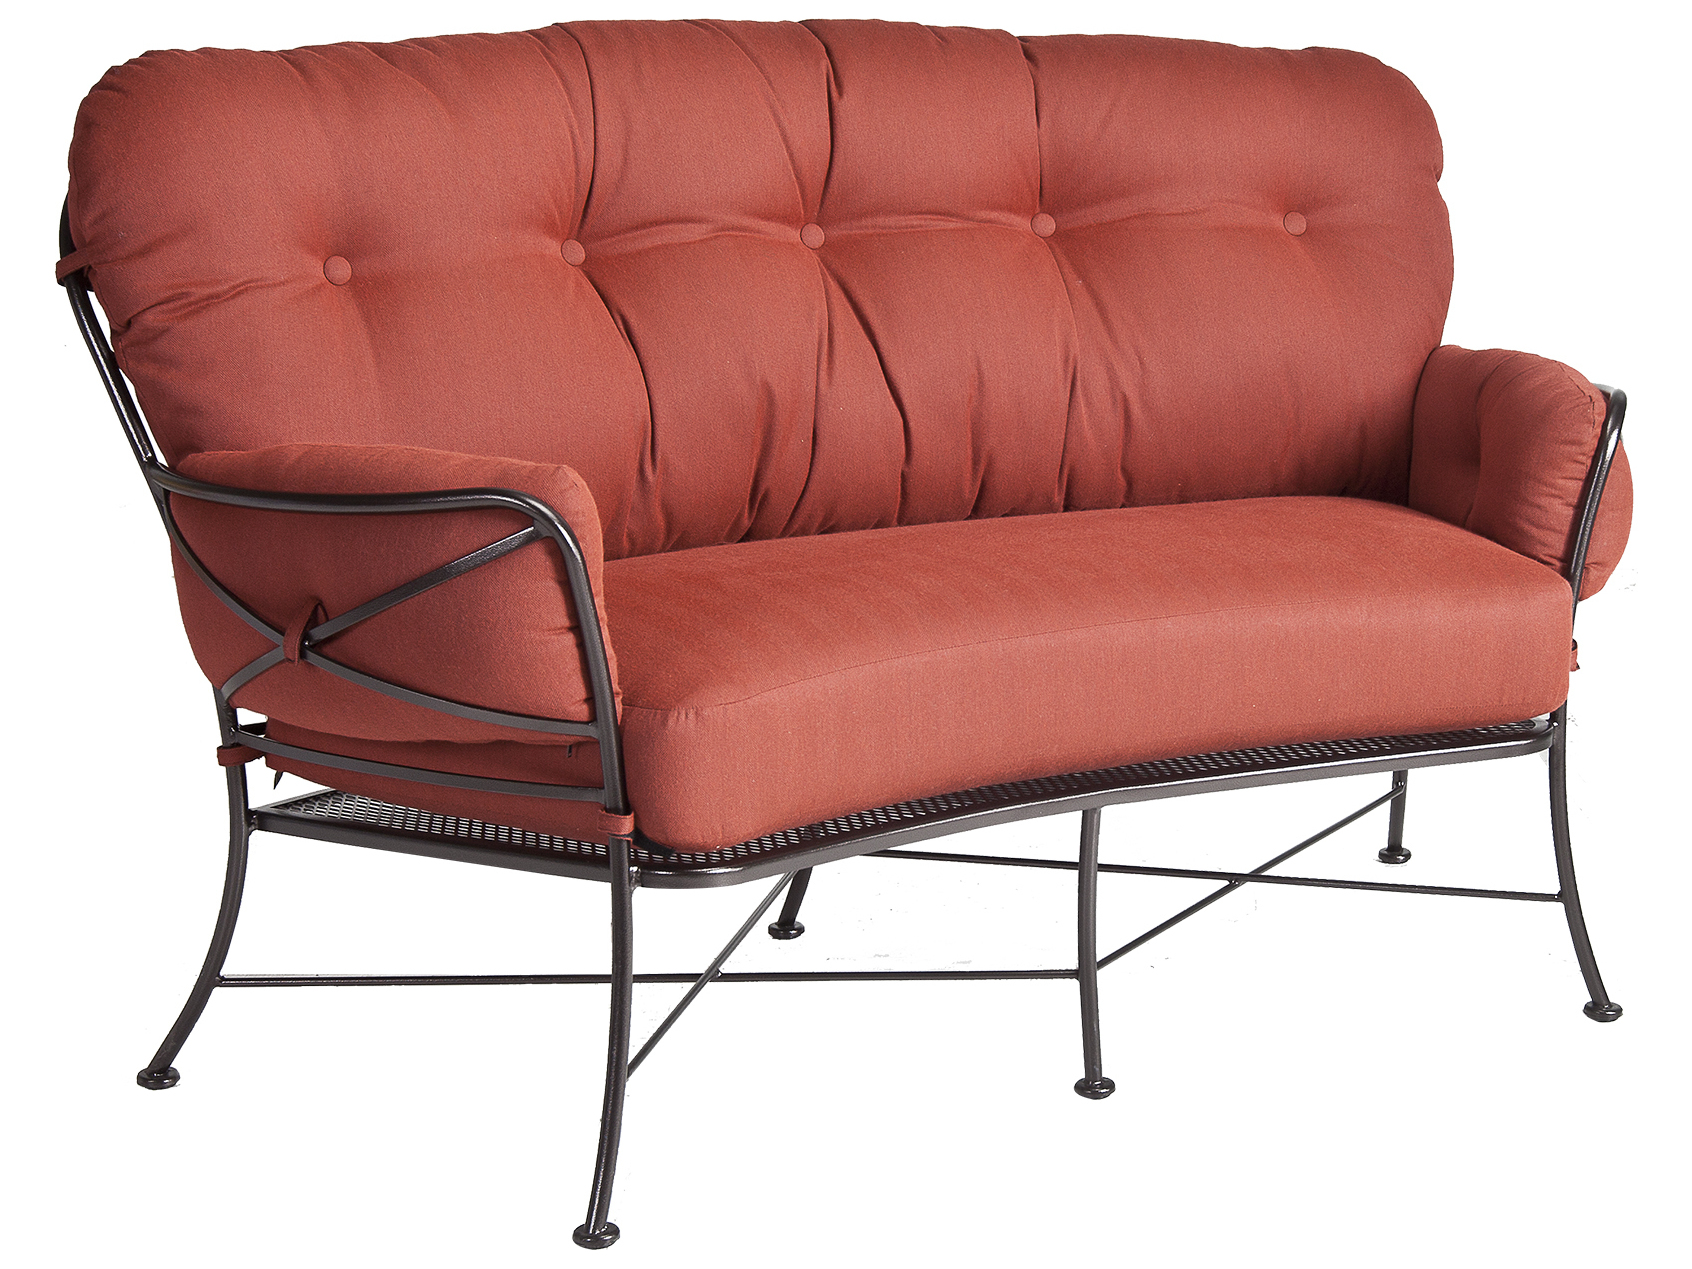 Ow Lee Cambria Wrought Iron Crescent Loveseat 17136 2s